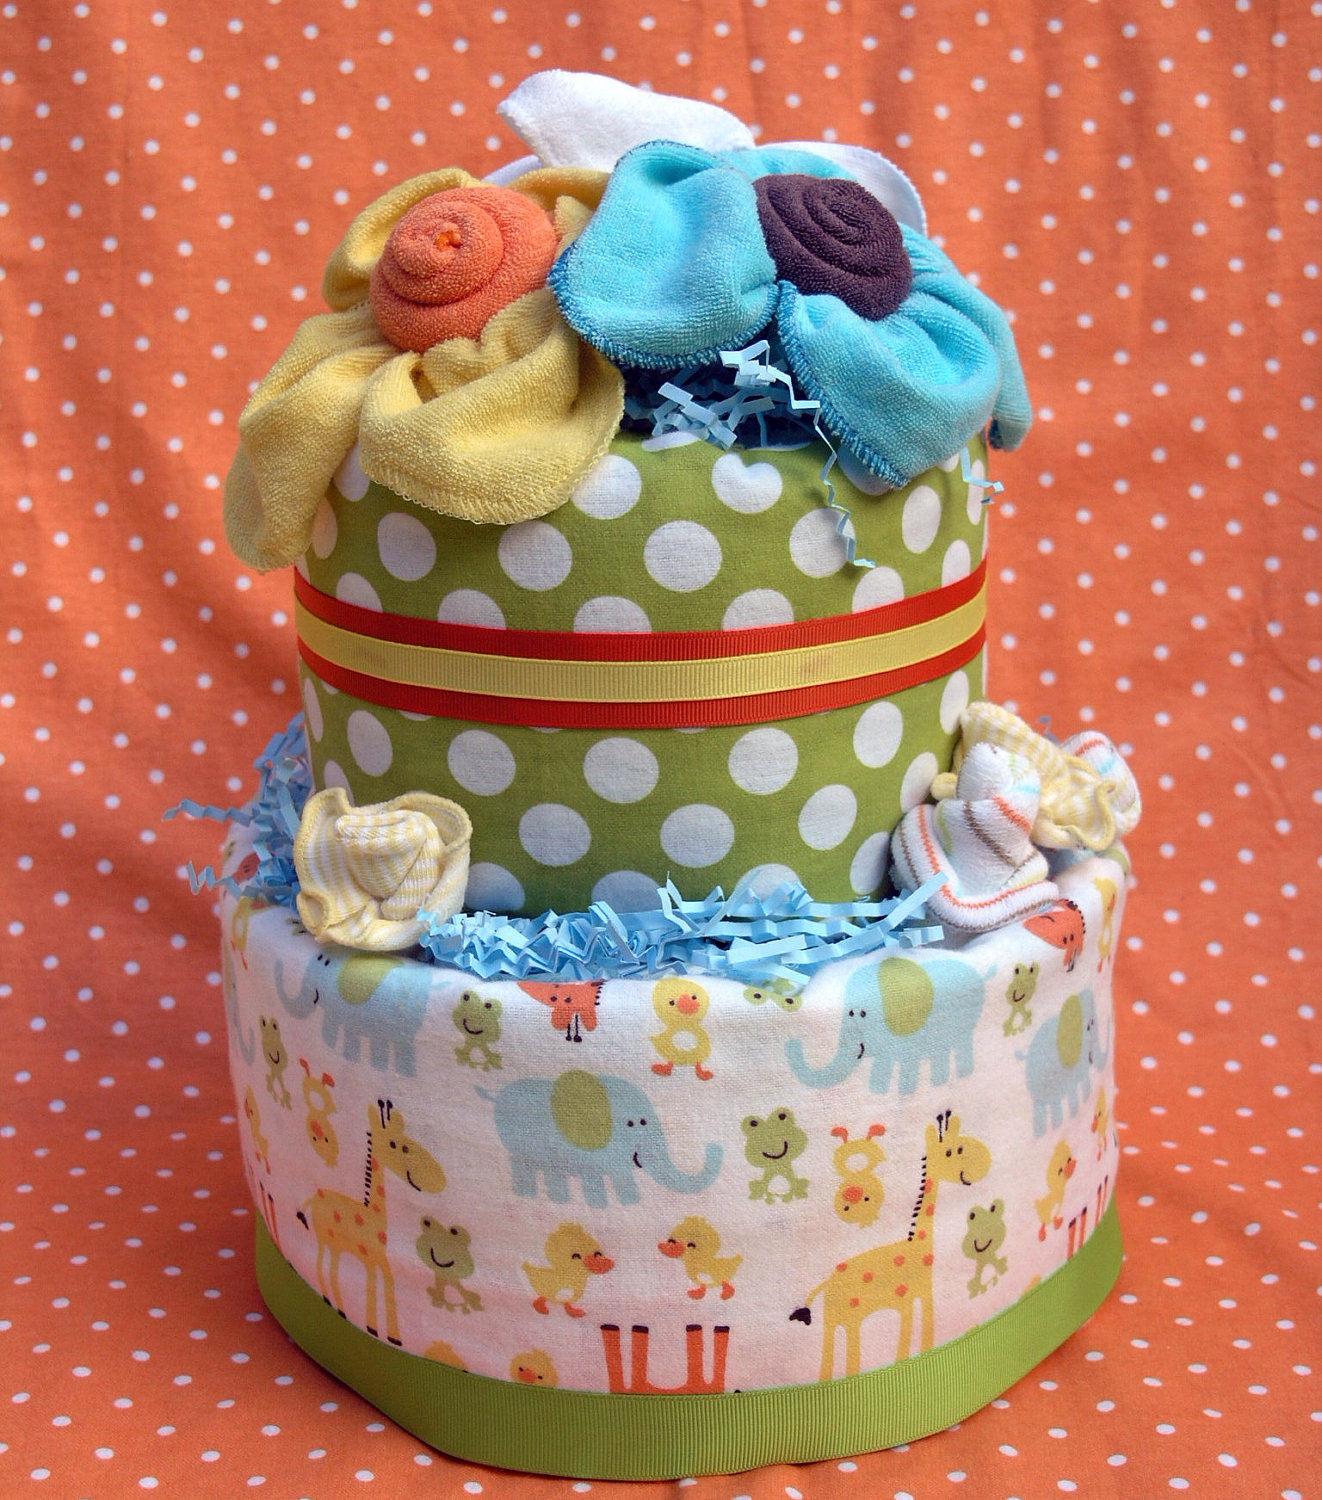 DIY Baby Shower Cakes  DIY Diaper Cakes For Baby Showers